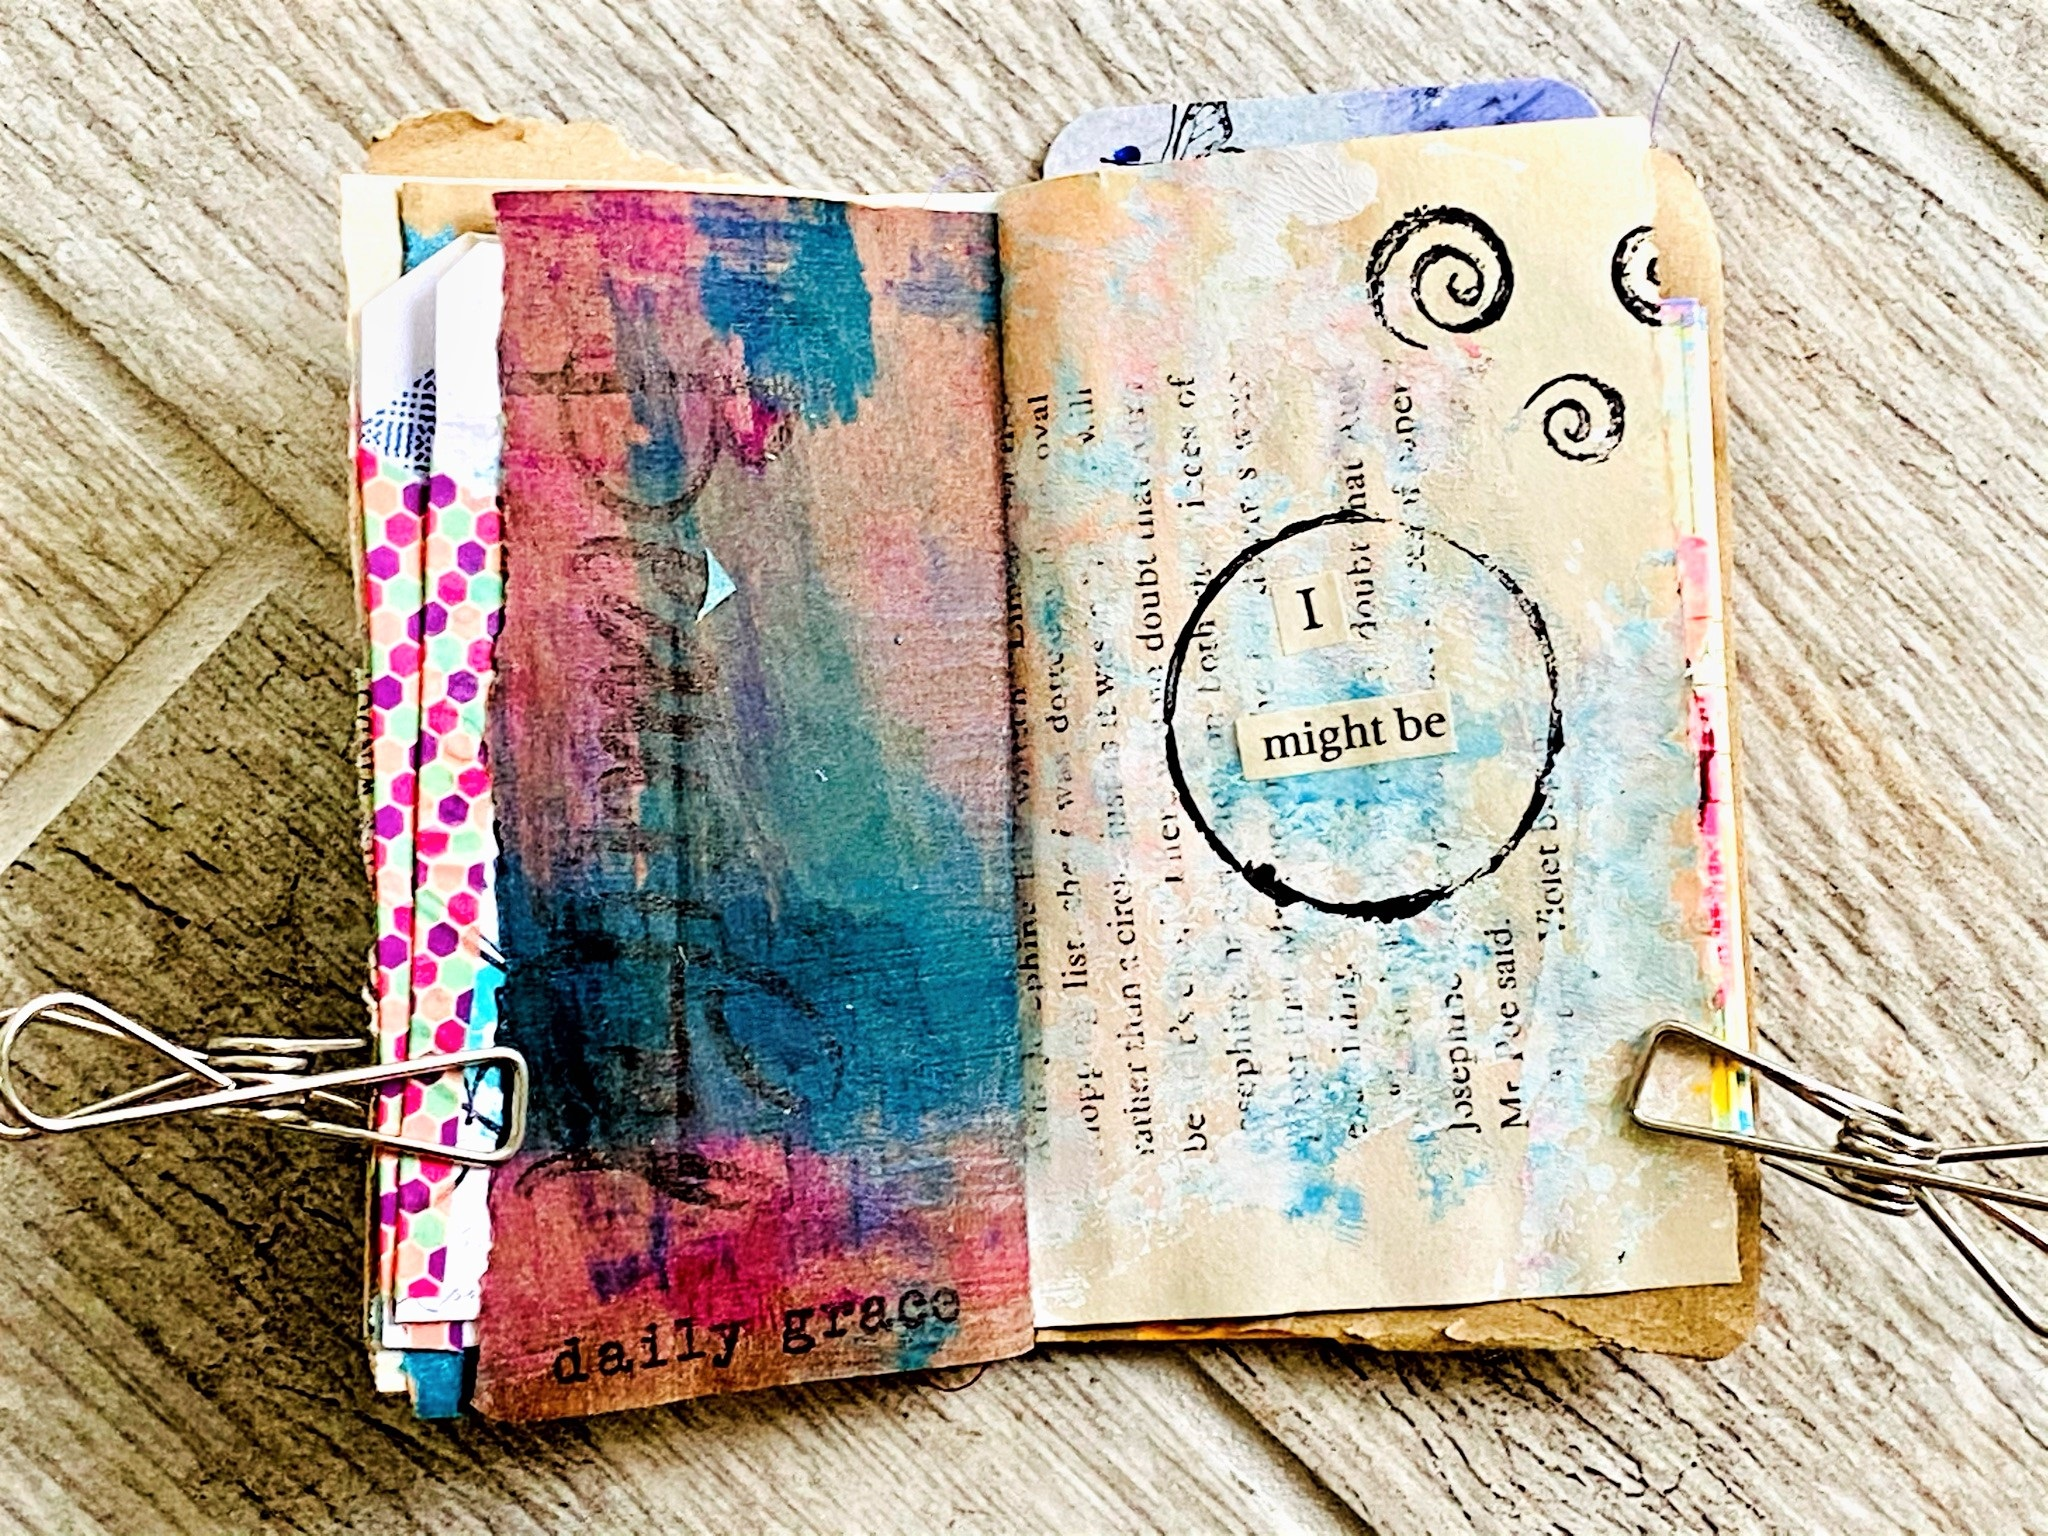 mixed media journal with 'found words' that say